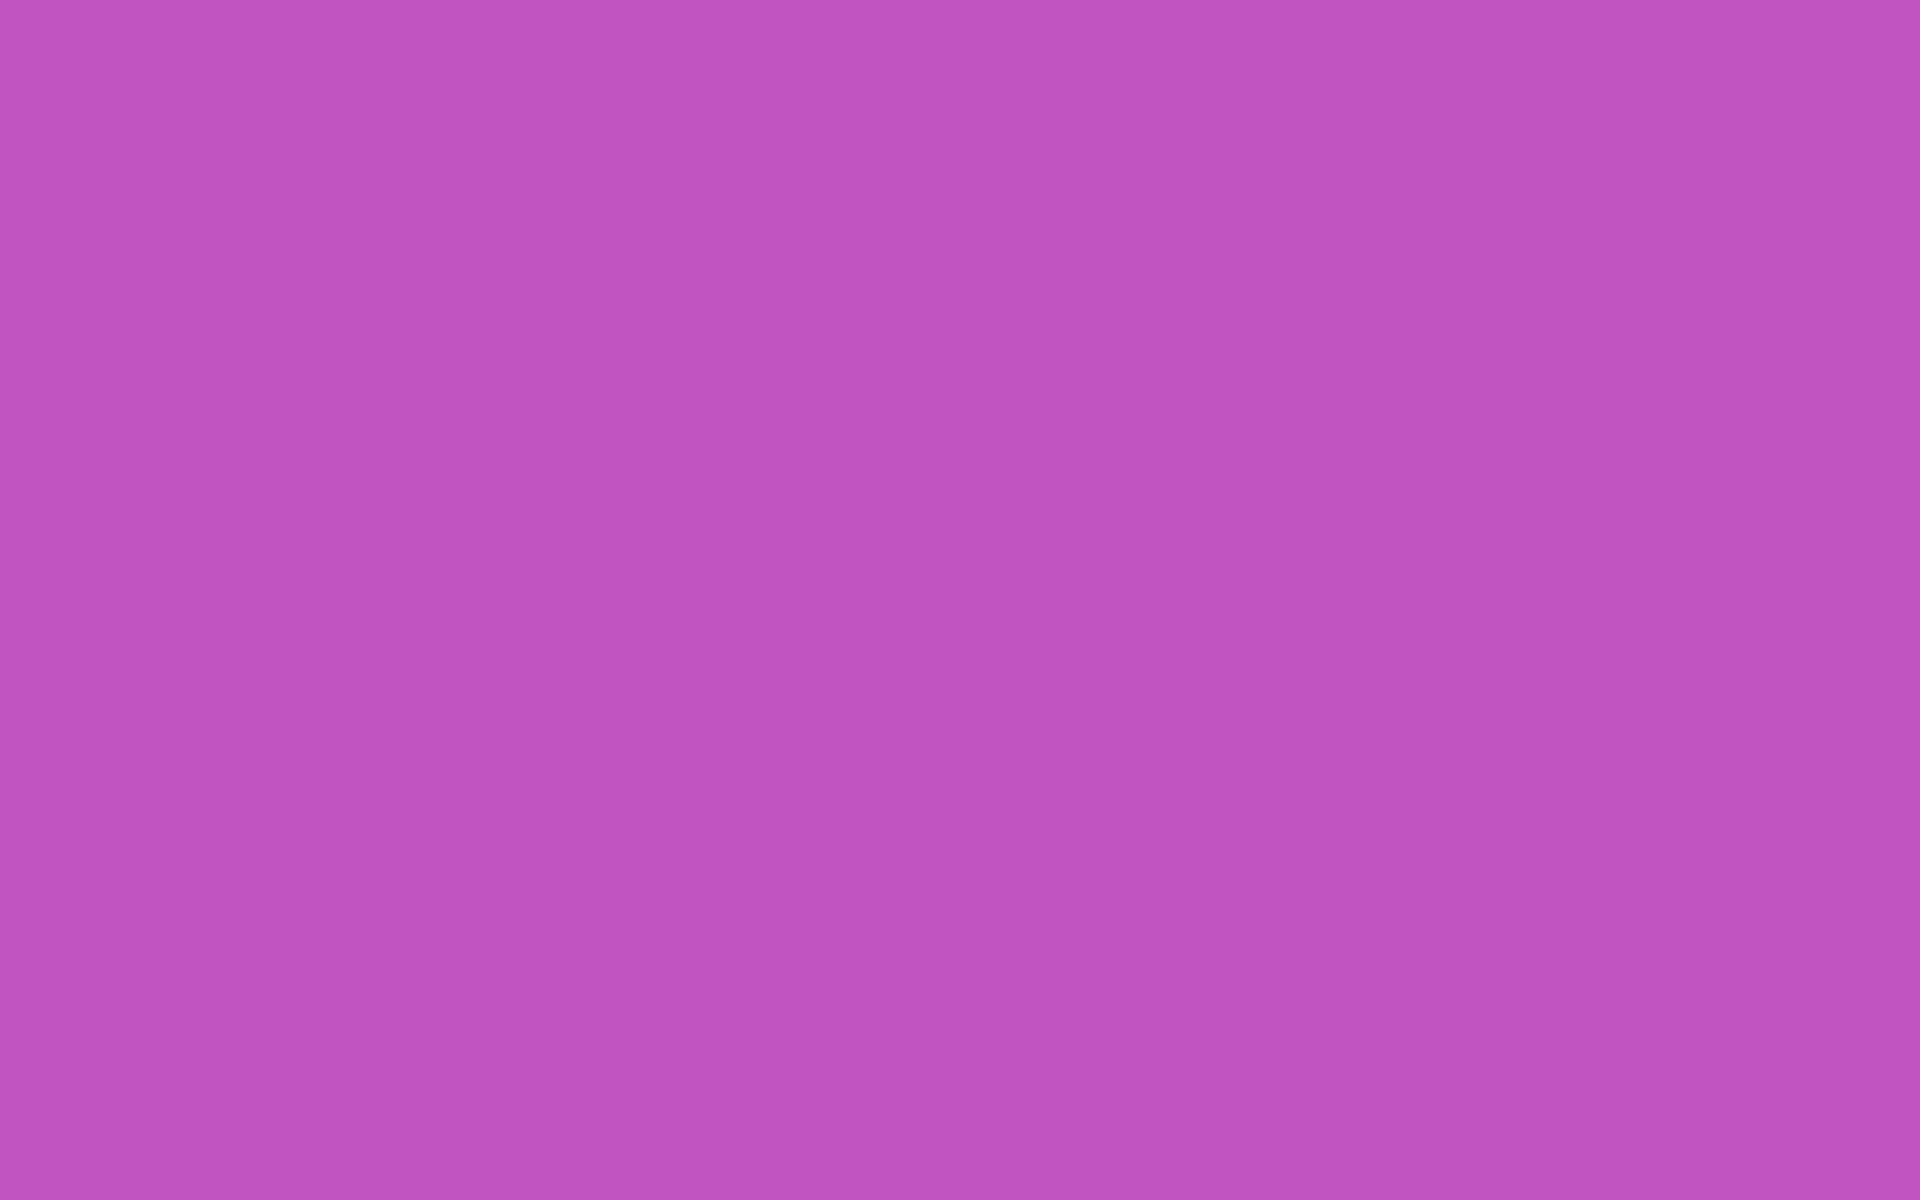 1920x1200 Fuchsia Crayola Solid Color Background